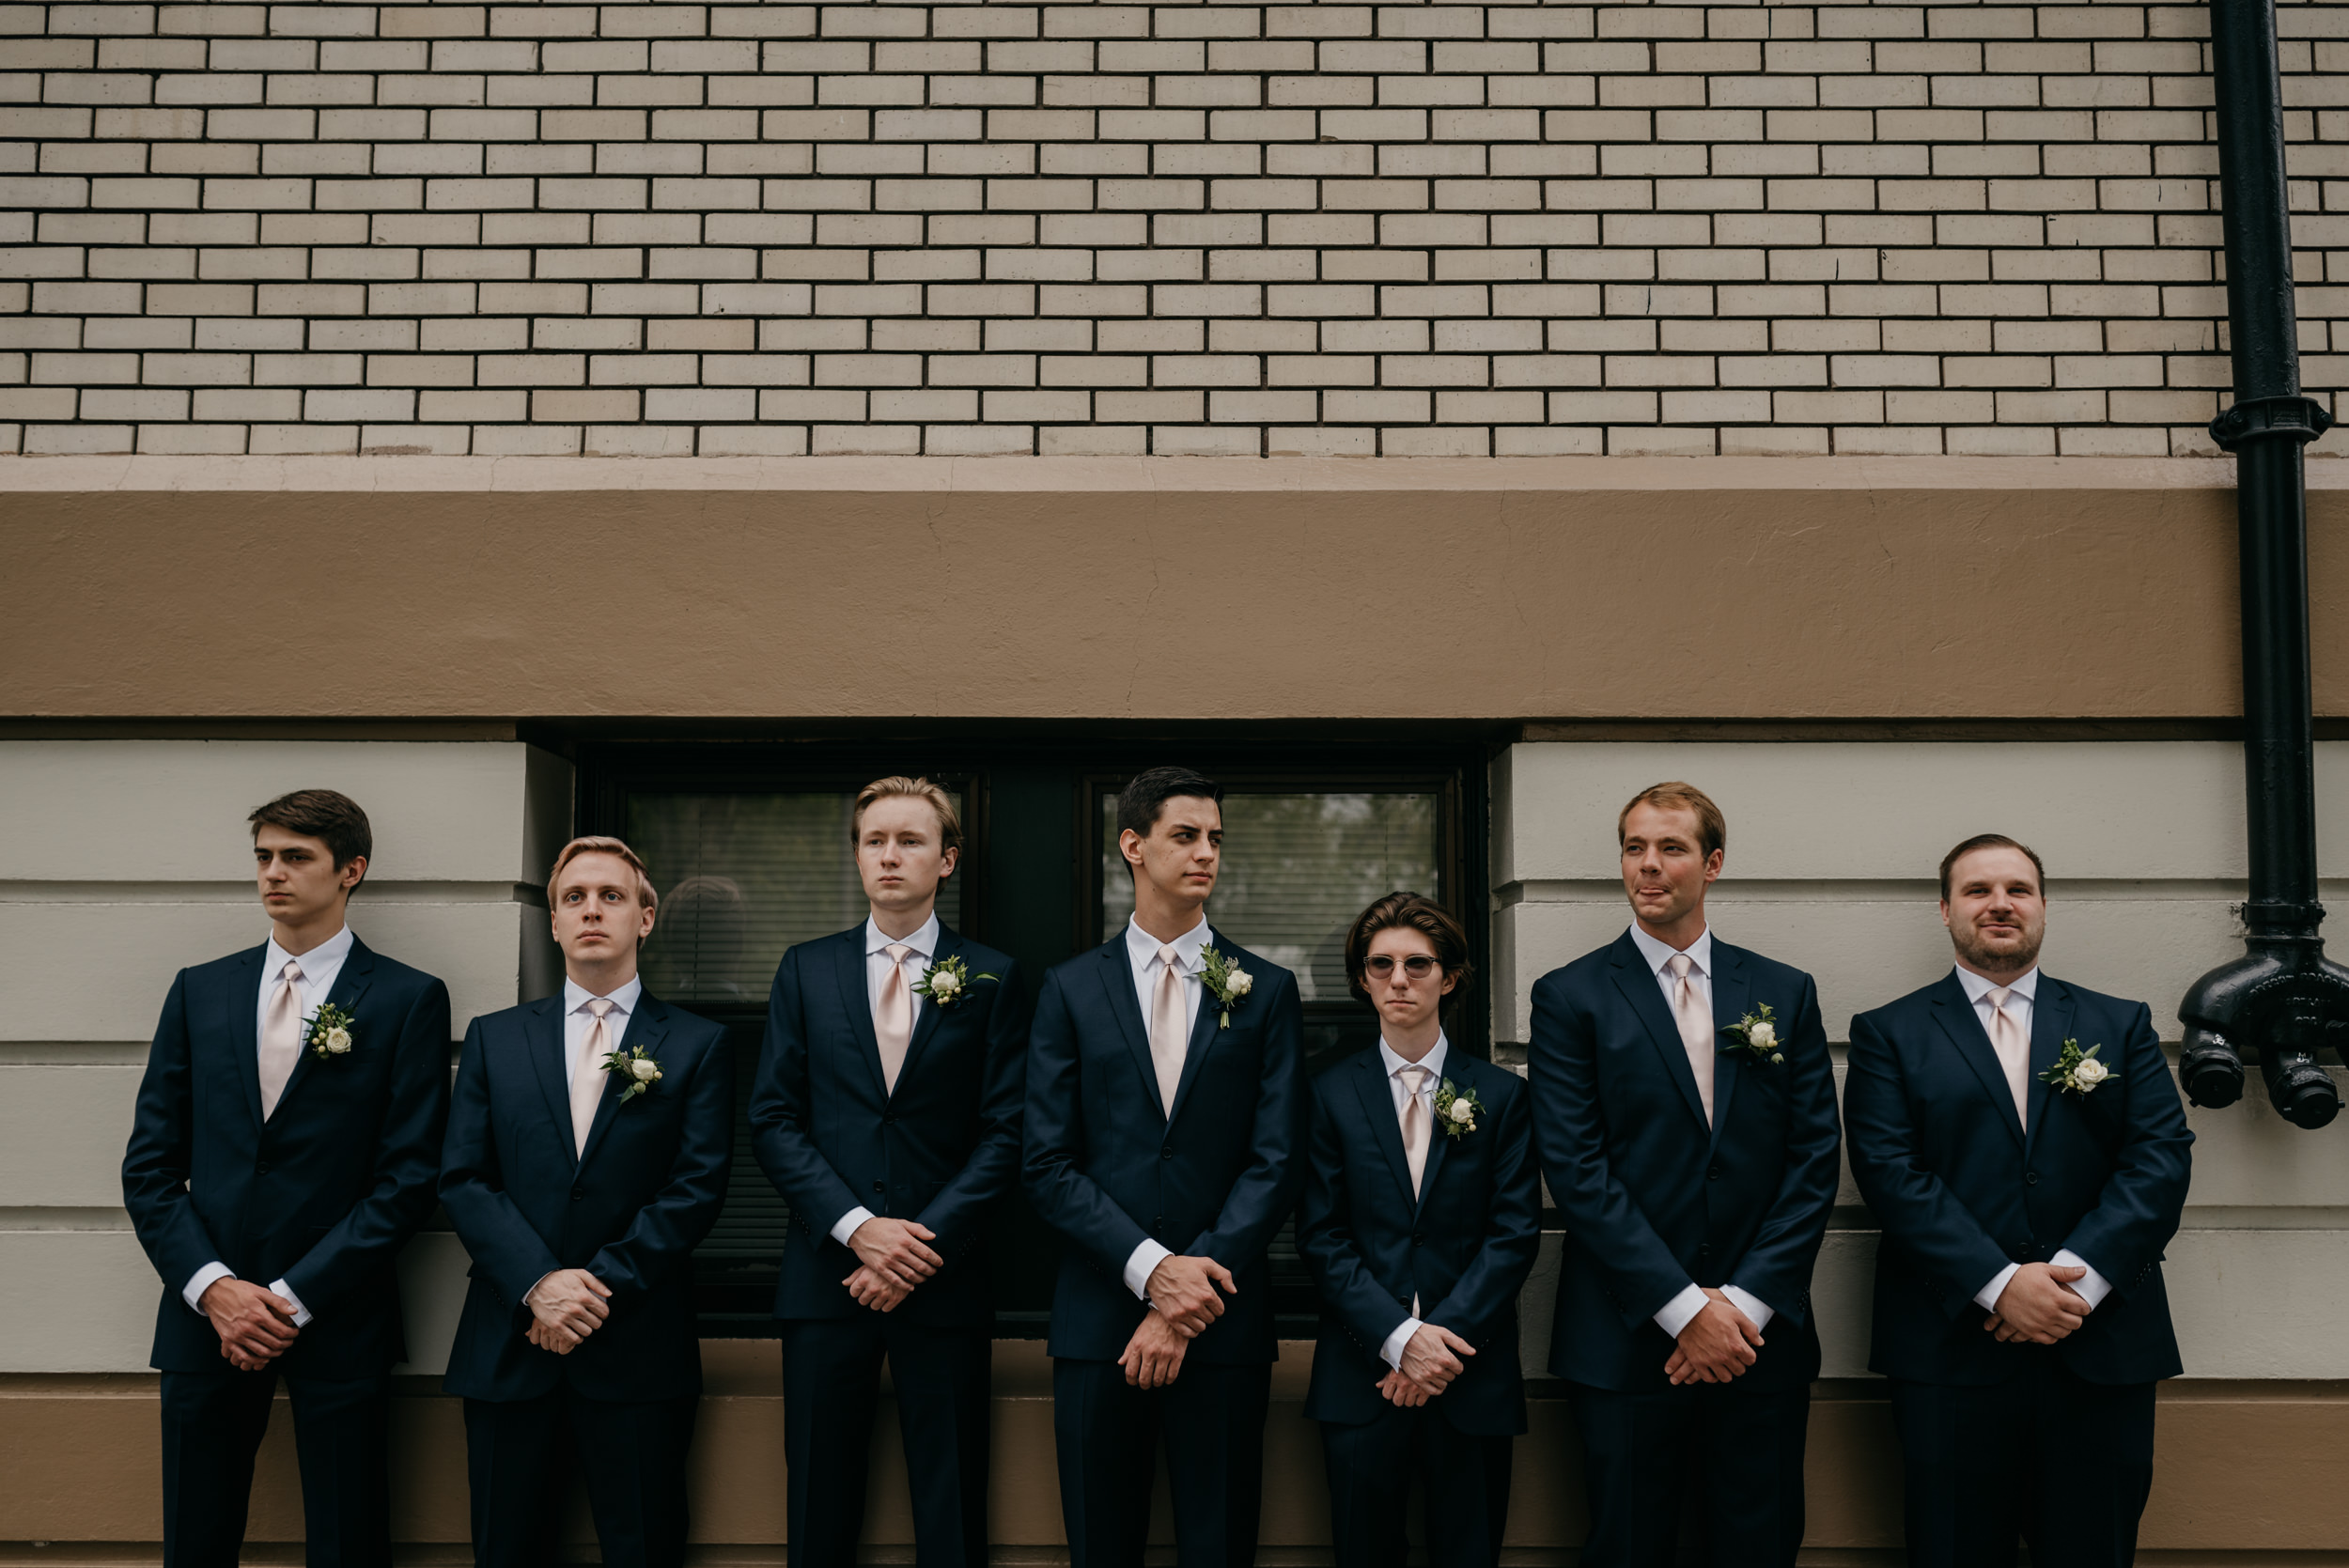 58-bridal-party-downtown-portland-first-look-7665.jpg